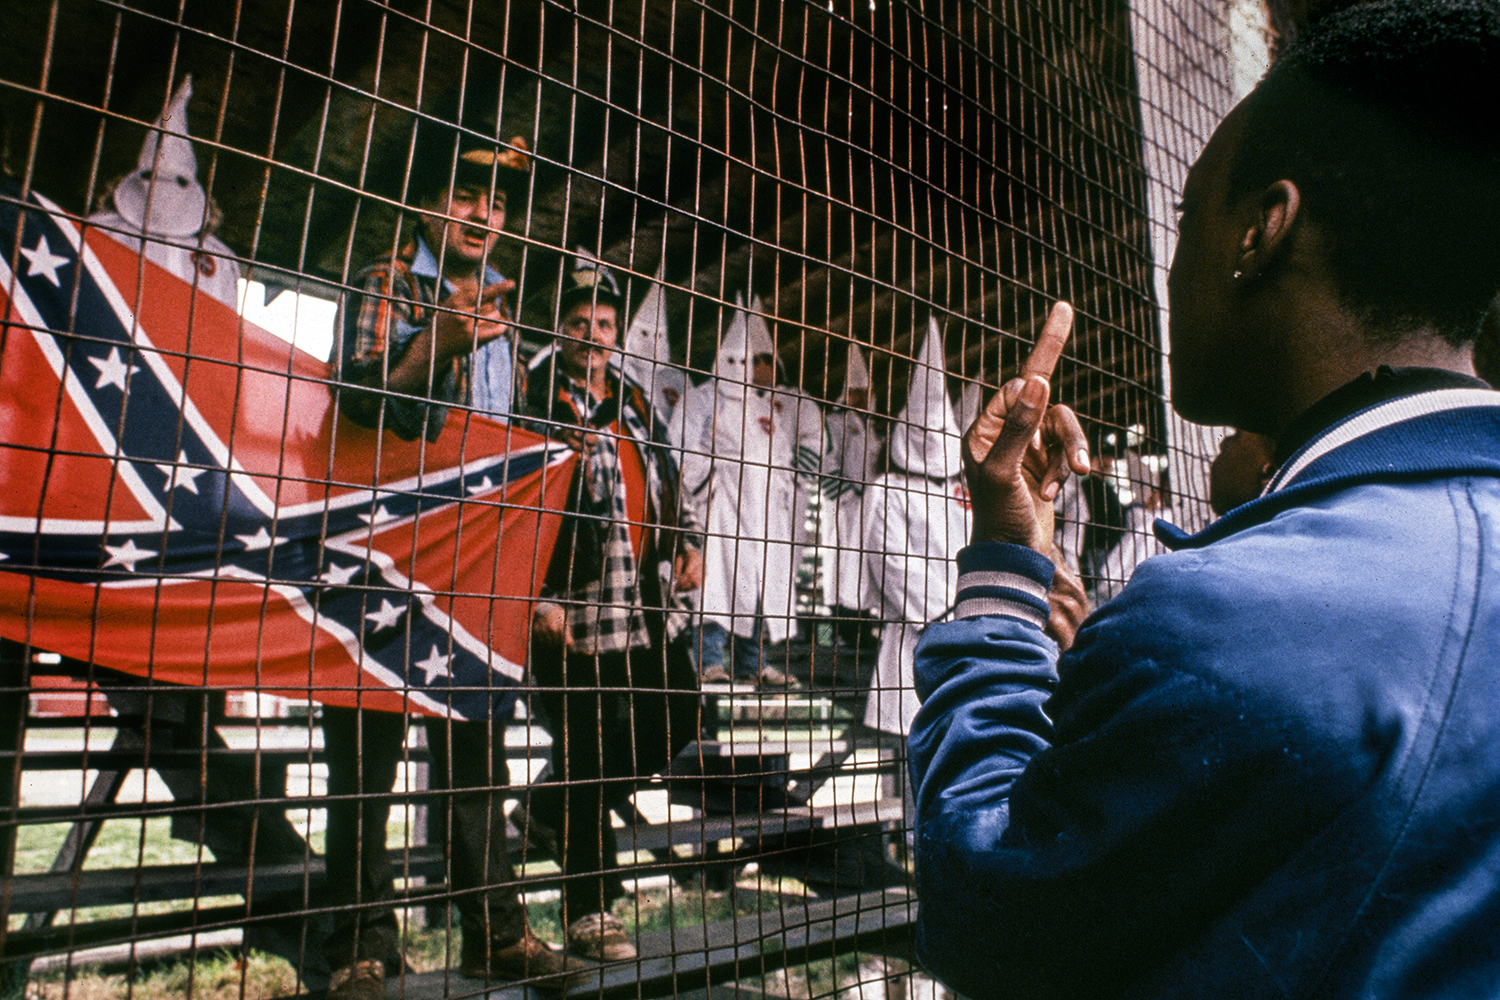 F*ck the KKK,  USA,  1990When the Ku Klux Klan , a white supremacist terrorist organization,  decided to march around a baseball field in a small town in southern New Jersey,  a crowd of protestors showed up to resist.  As the KKK donned their white robes and waved their confederate flags,  the protesting crowd, led by many black high school students,  pushed the Klan behind the ball field fence and into the wooden bleachers.  The Klan grew frightened and weak as the protesters outnumbered them.    Chanting with righteous anger and moral authority,  these teenagers drove the racist hate mongers  off the field and out of town. It was my privilege to witness this beautiful moment of resistance when young people stood up for their ancestors and their own dignity.